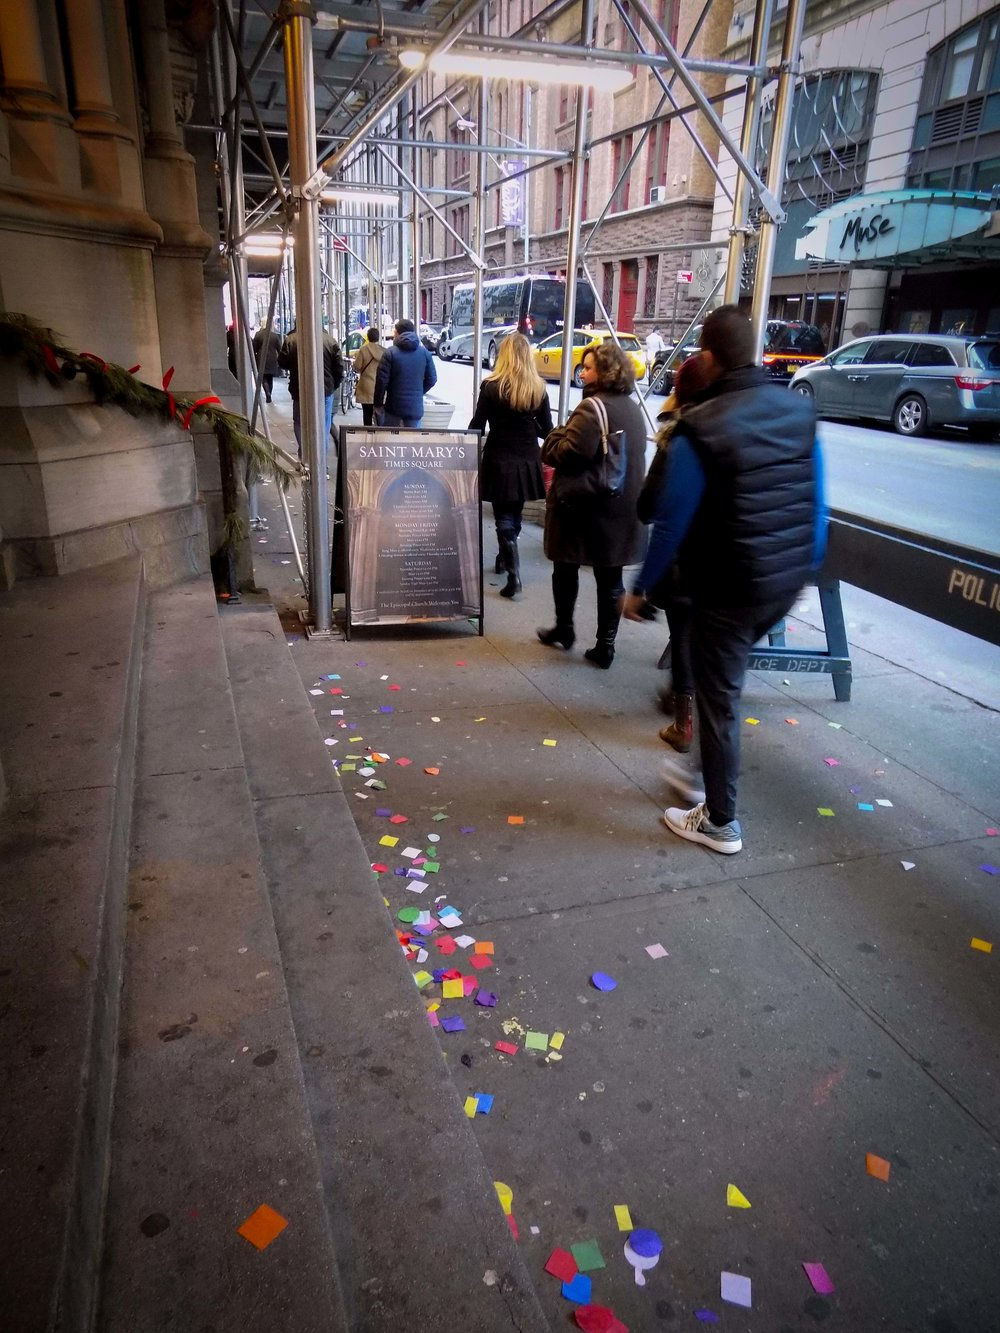 Confetti will continue to wash down during rainstorms until the fall.